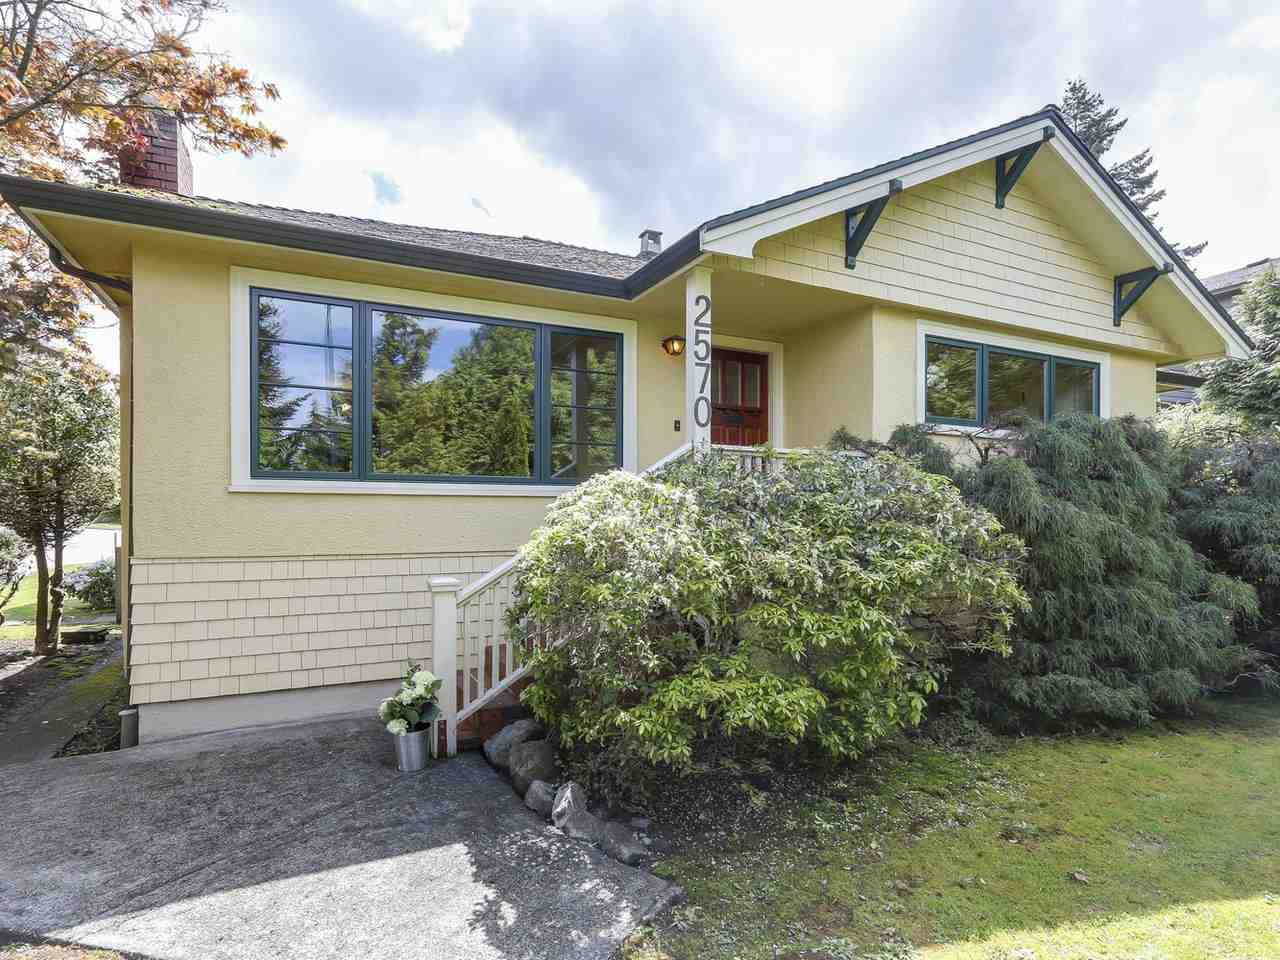 Main Photo: 2570 W KING EDWARD Avenue in Vancouver: Quilchena House for sale (Vancouver West)  : MLS® # R2169012